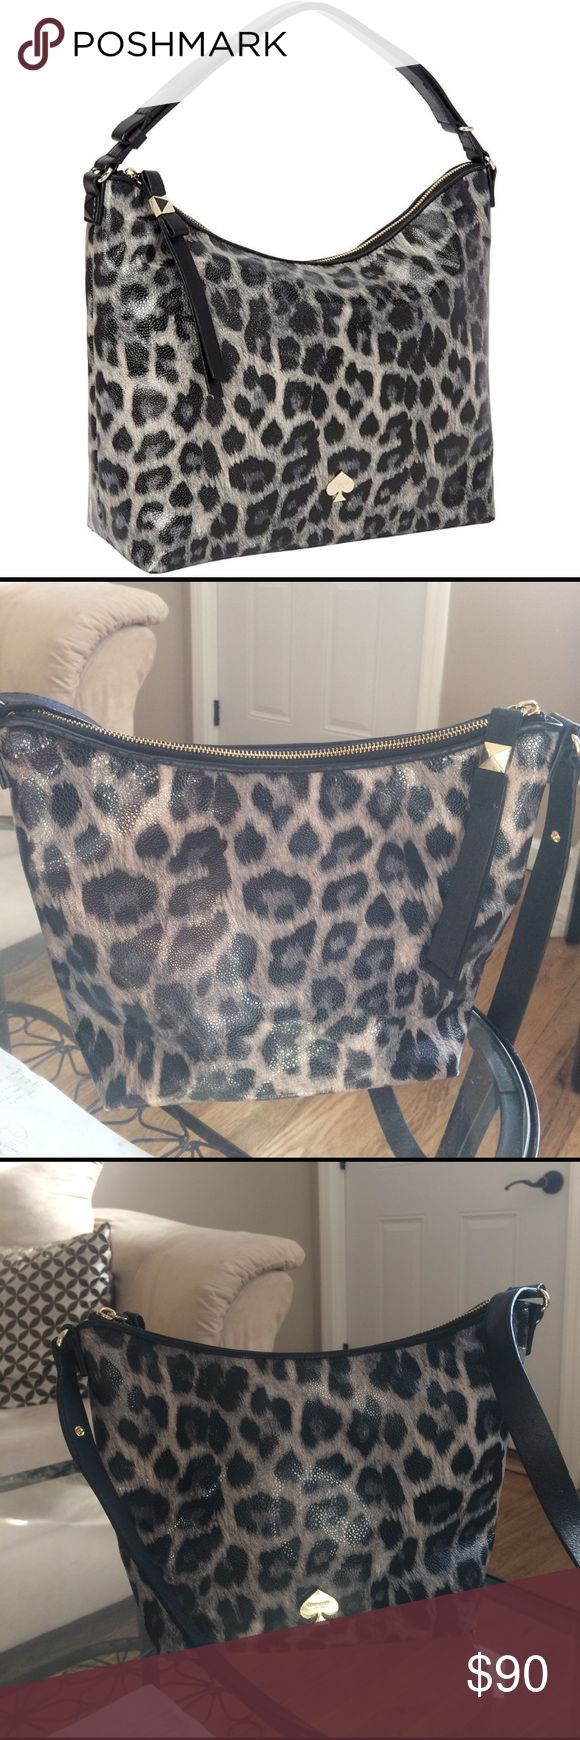 EUC Kate Spade Leroy St. Vivienne Animal Print Bag Very gently used Kate Spade bag.  Can be worn as a crossbody or as a Tote, the strap is adjustable.  Black bow detail on the base of the bag.  Interior in excellent condition, exterior condition has a few small marks on the corners (as shown in a picture) and small scratches on the logo, but it is very minor.  Color is most accurate in the first picture. kate spade Bags Crossbody Bags